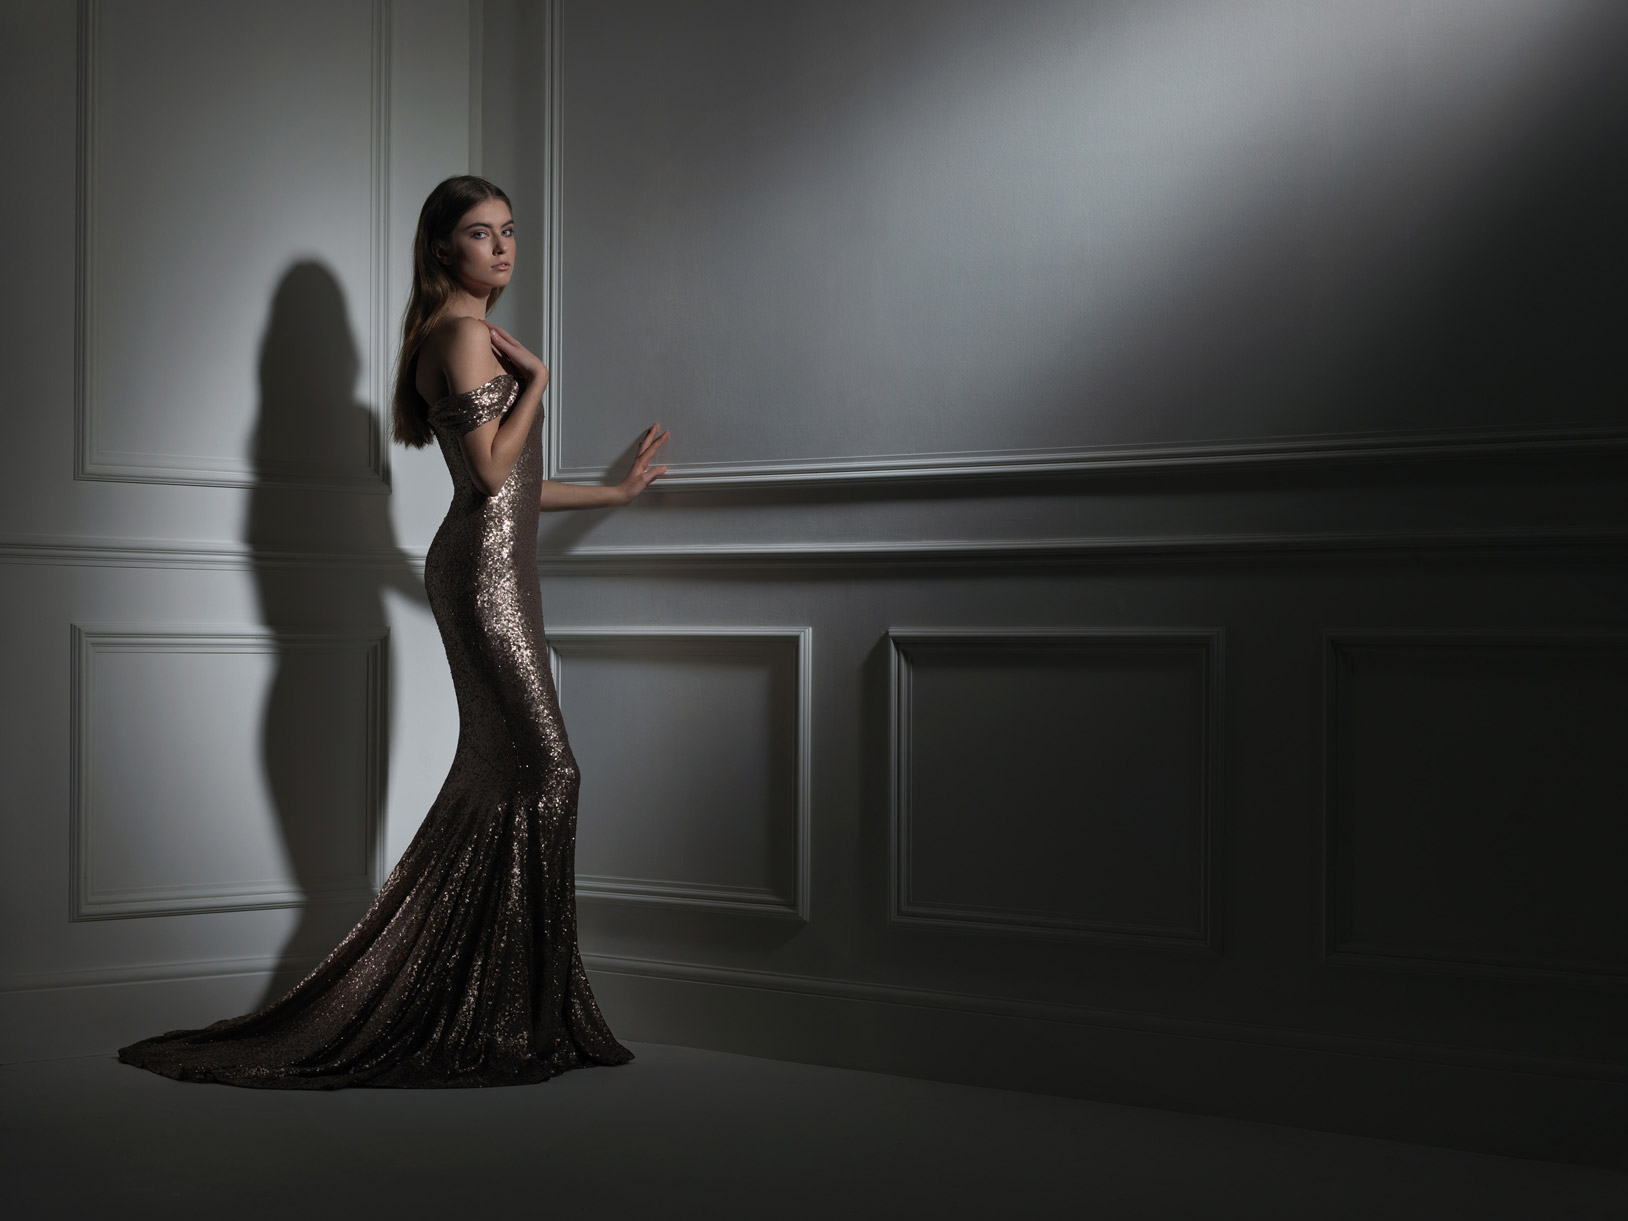 Fashion image with theatrical lighting